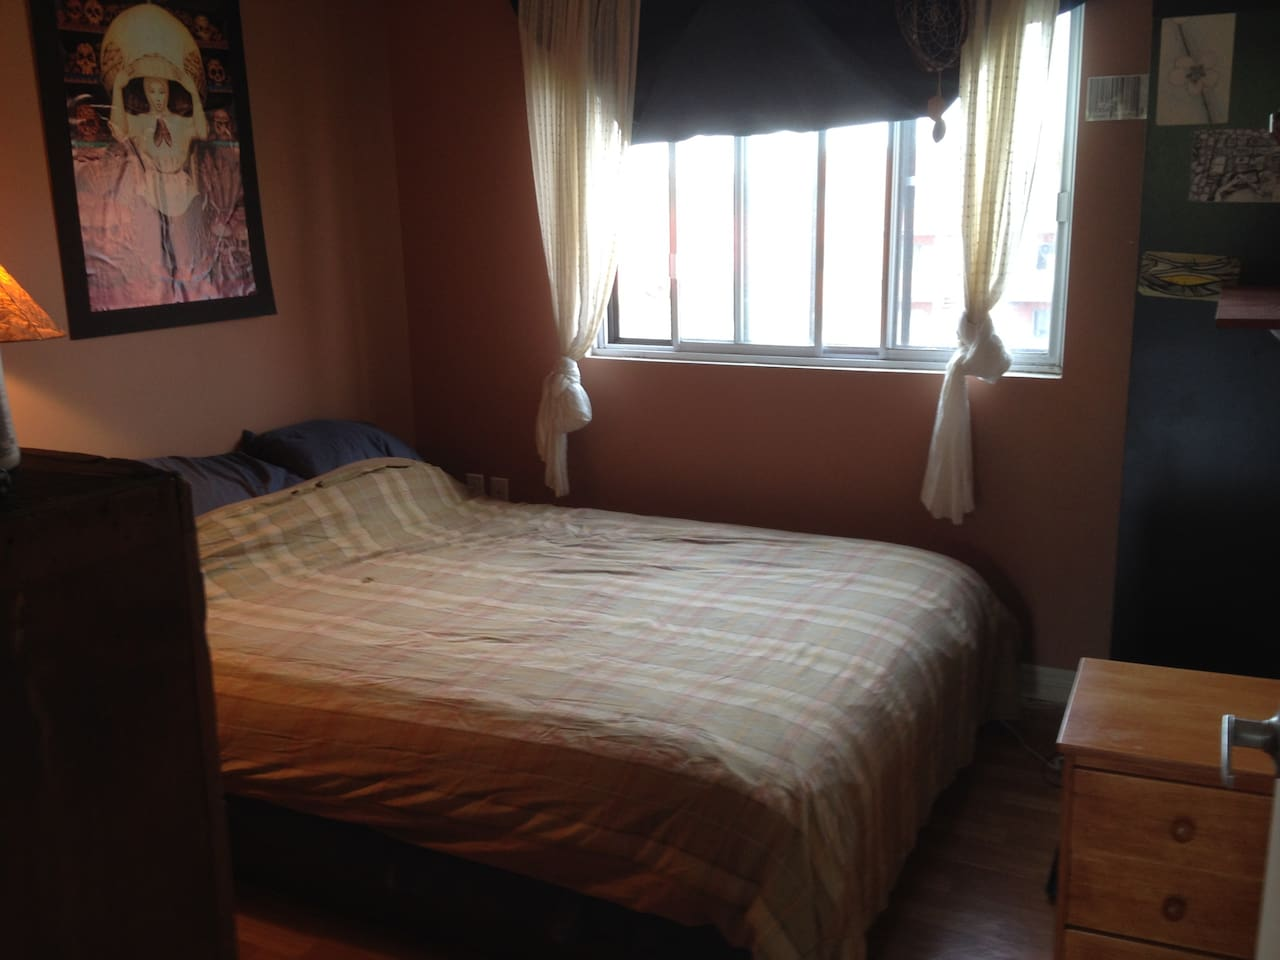 Nice bedroom with brand new duvet cover and a really comfortable mattress!